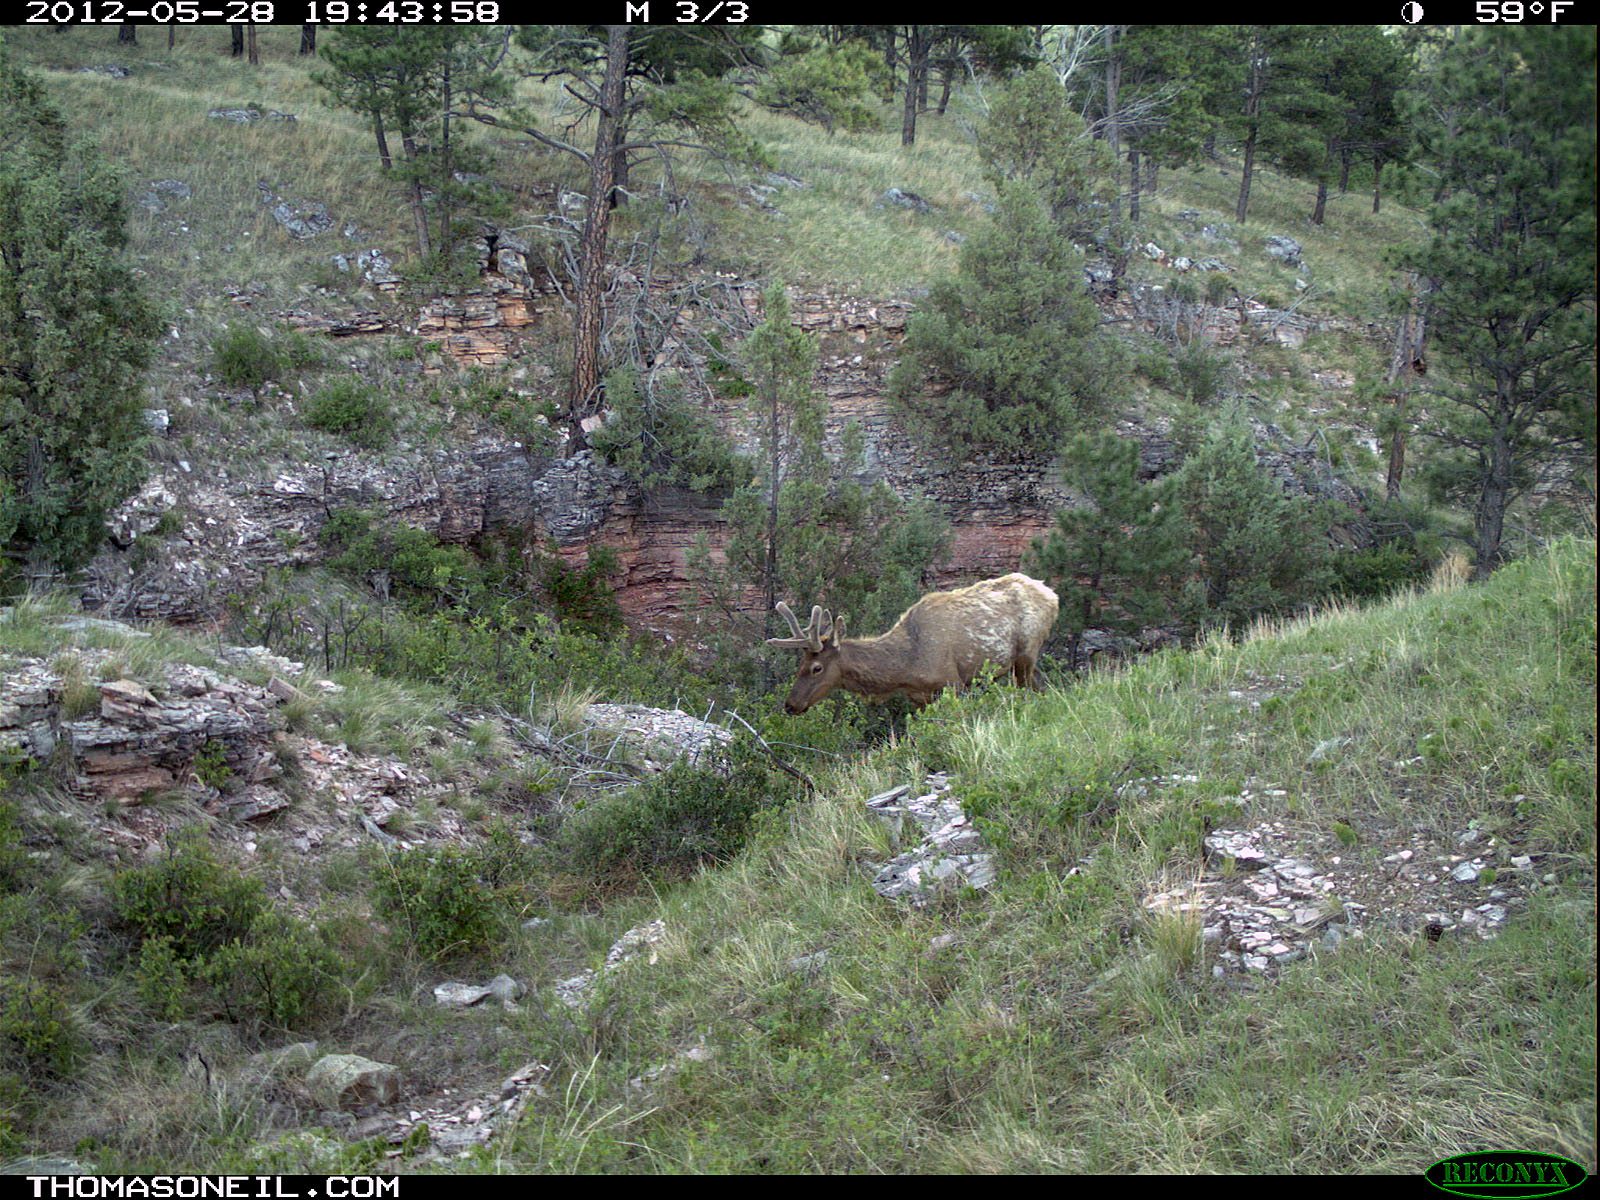 Trailcam picture of elk, Wind Cave National Park, May 28.  Click for next photo.